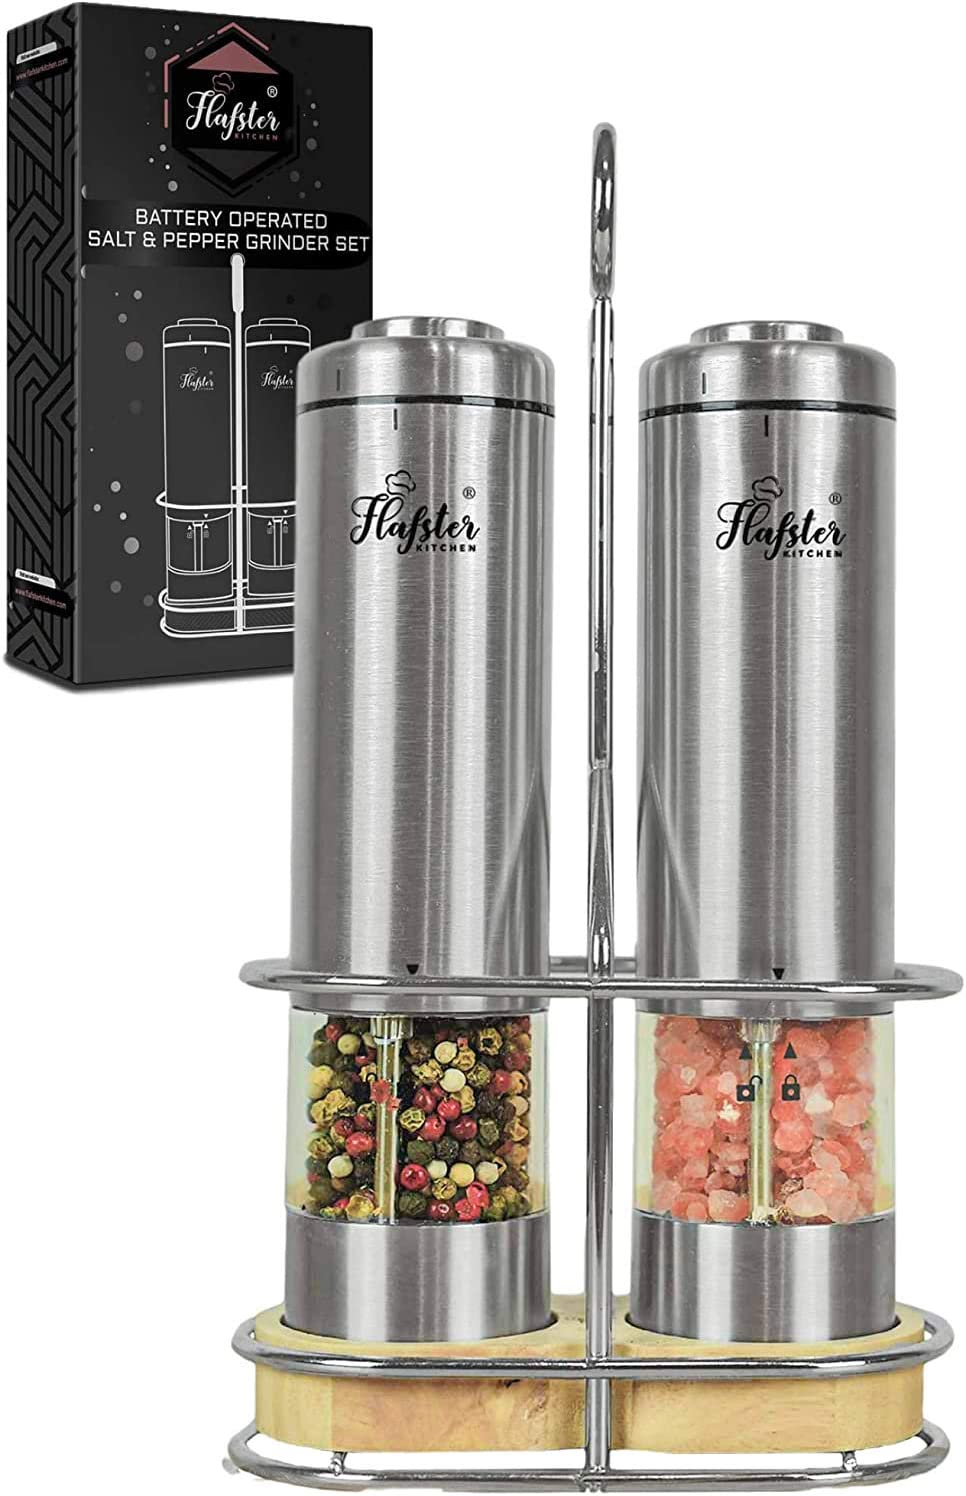 Electric Salt And Pepper Grinder Set Battery Operated Stainless Steel Salt Pepper Mills 2 By Flafster Kitchen Tall Power Shakers With Stand Ceramic Grinders With Lights And Adjustable Coarseness Kitchen